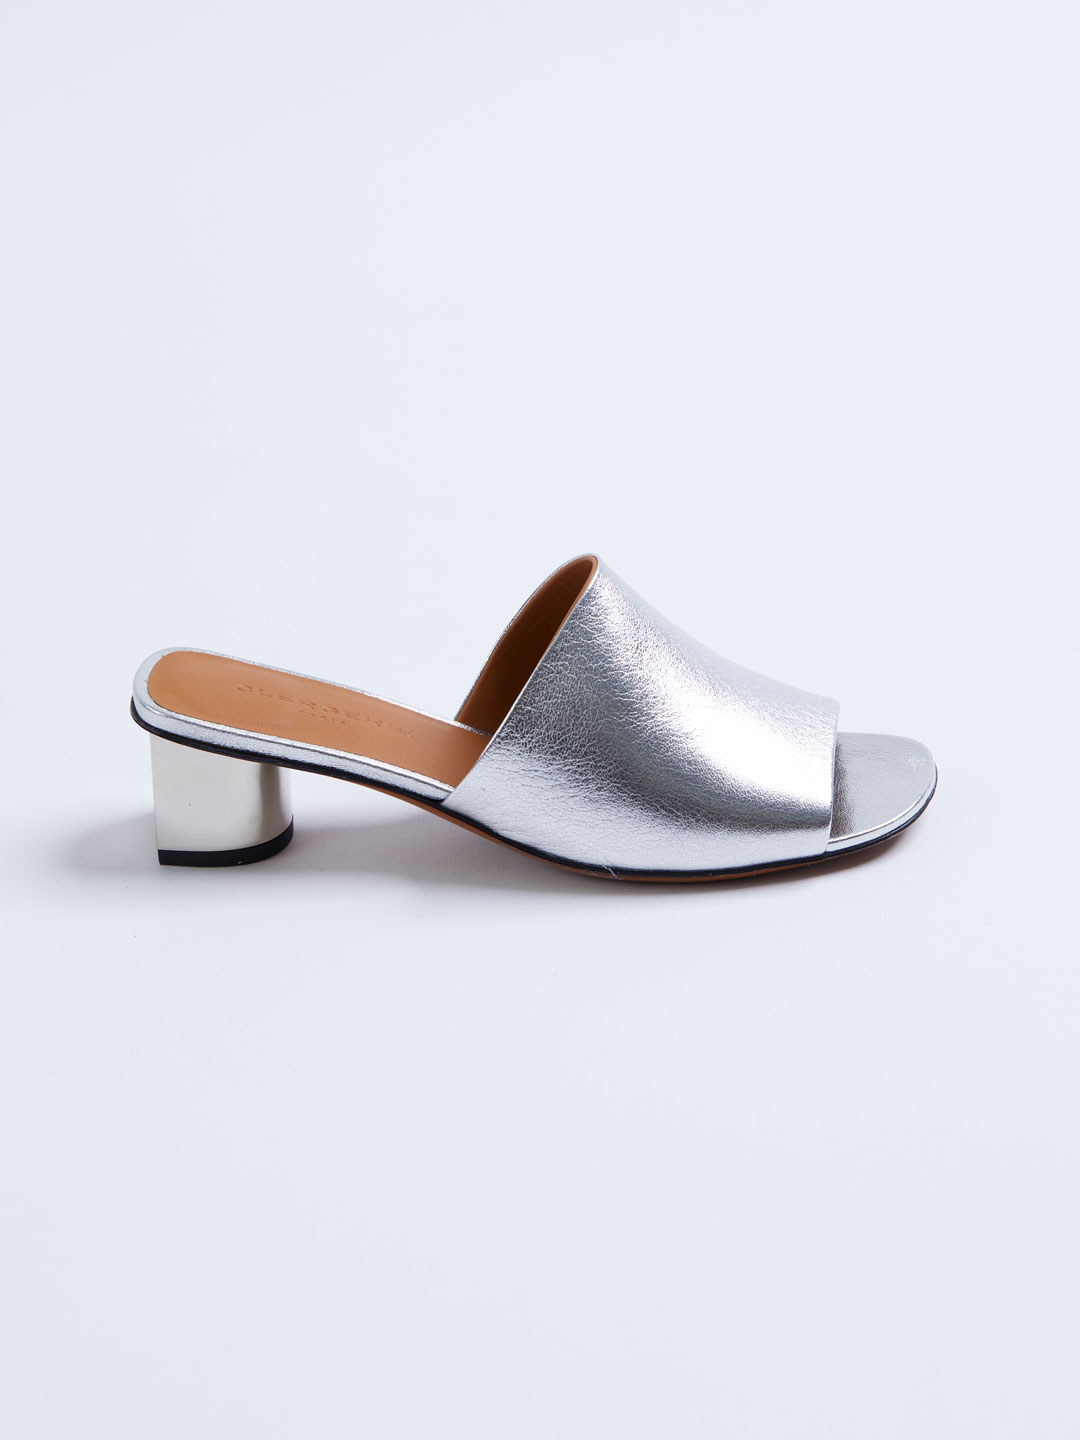 LEO5 Middle Heel Metalic Mules - Silver